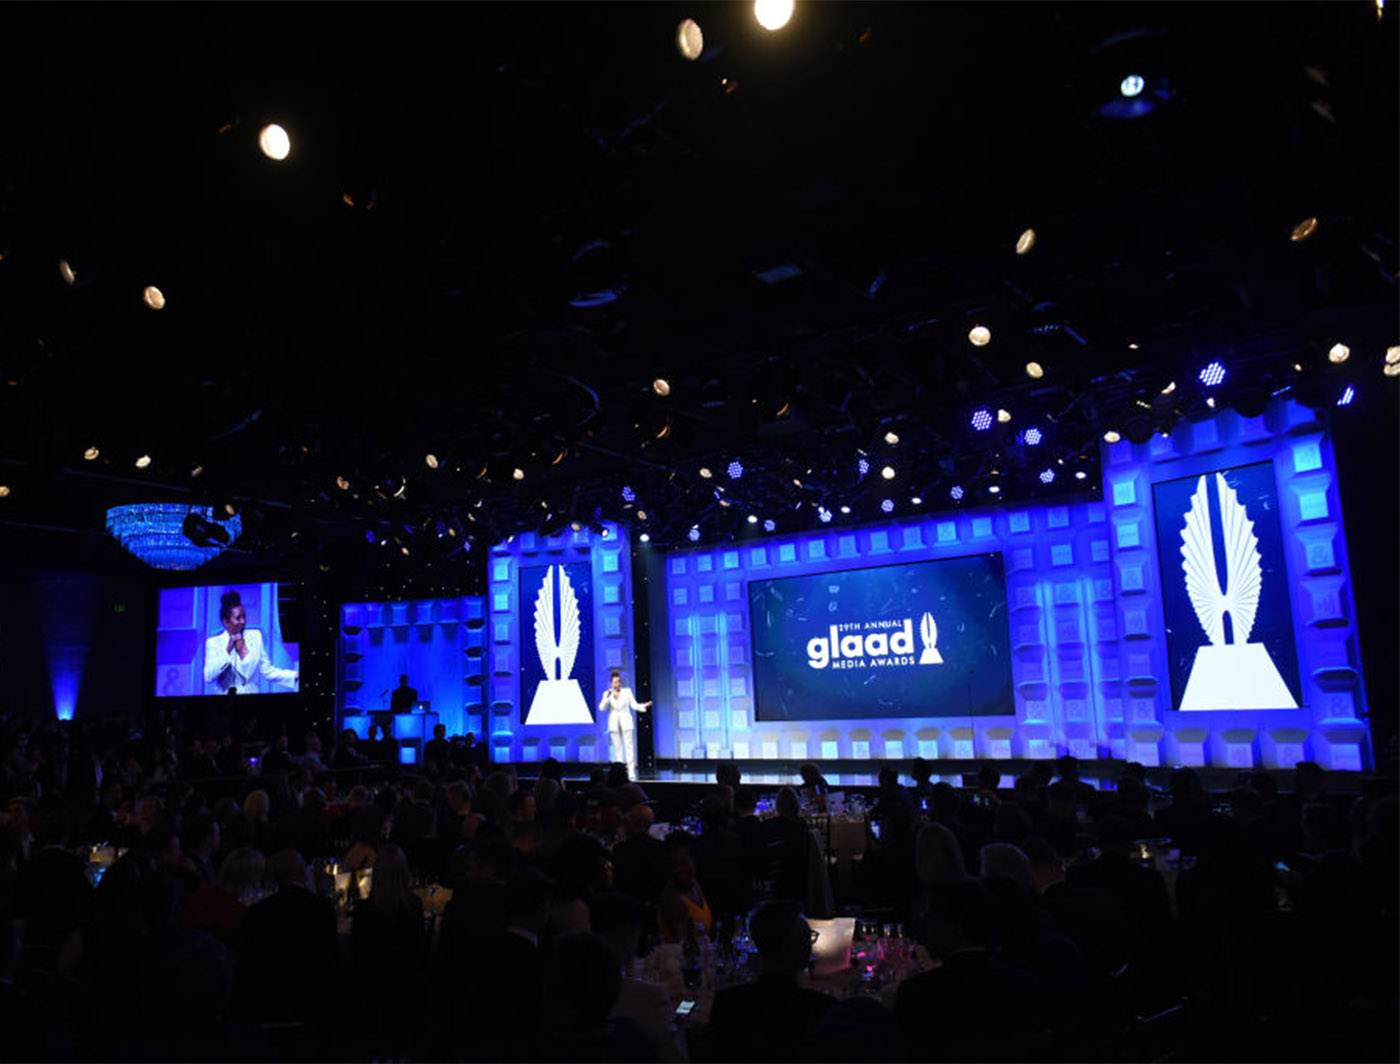 glaad awards 2020